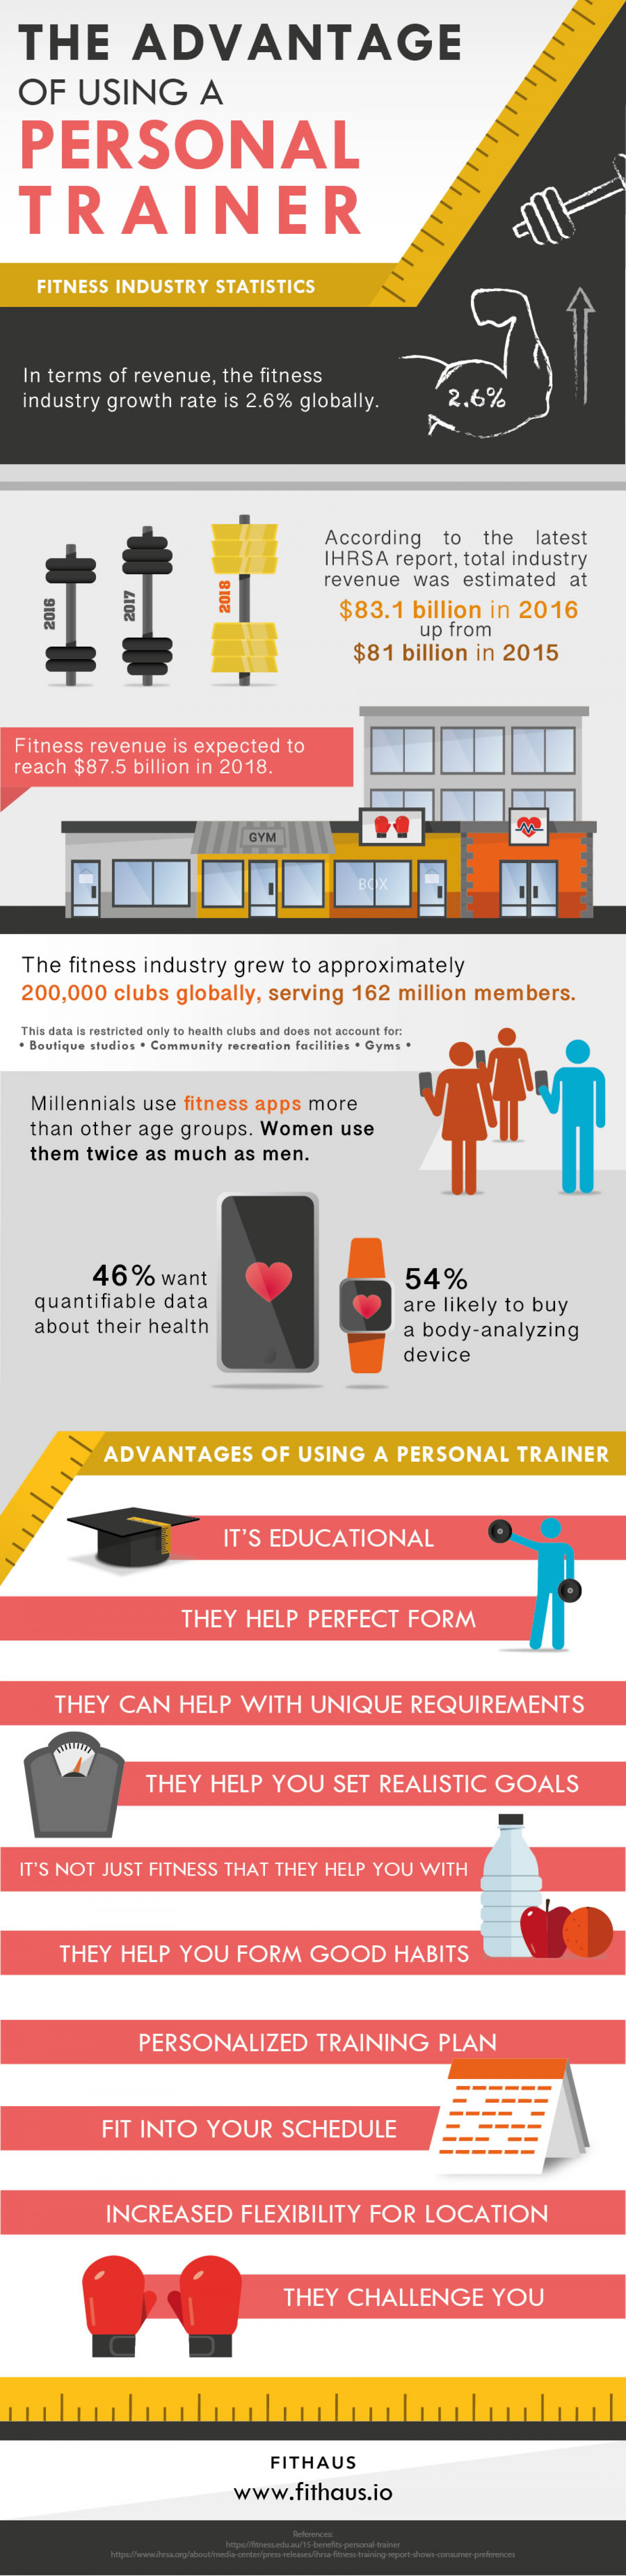 The Advantage of using a Personal Trainer Infographic